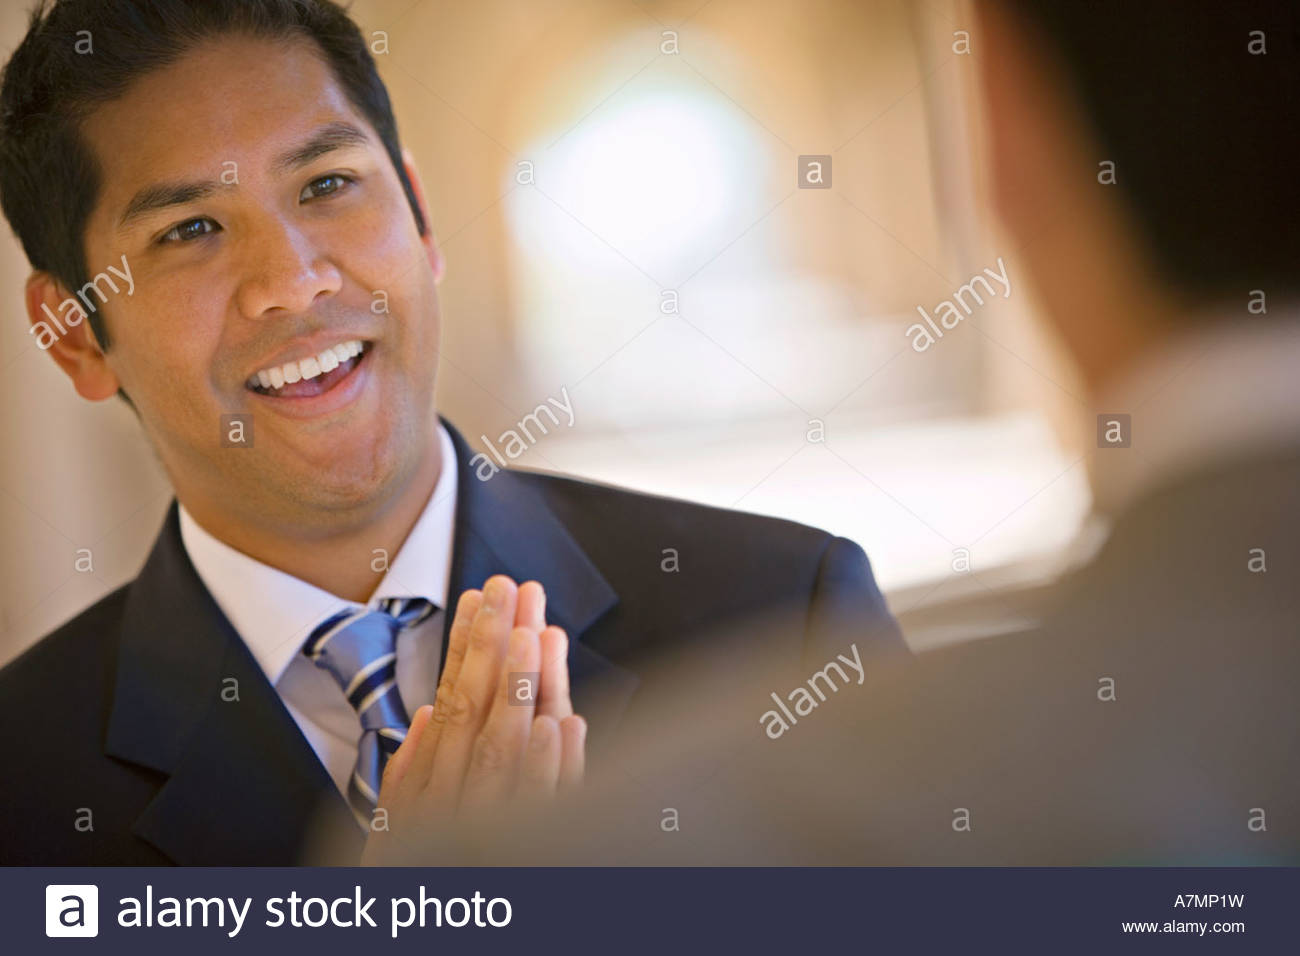 Respectful businessman greeting counterpart in building arcade smiling differential focus tilt - Stock Image